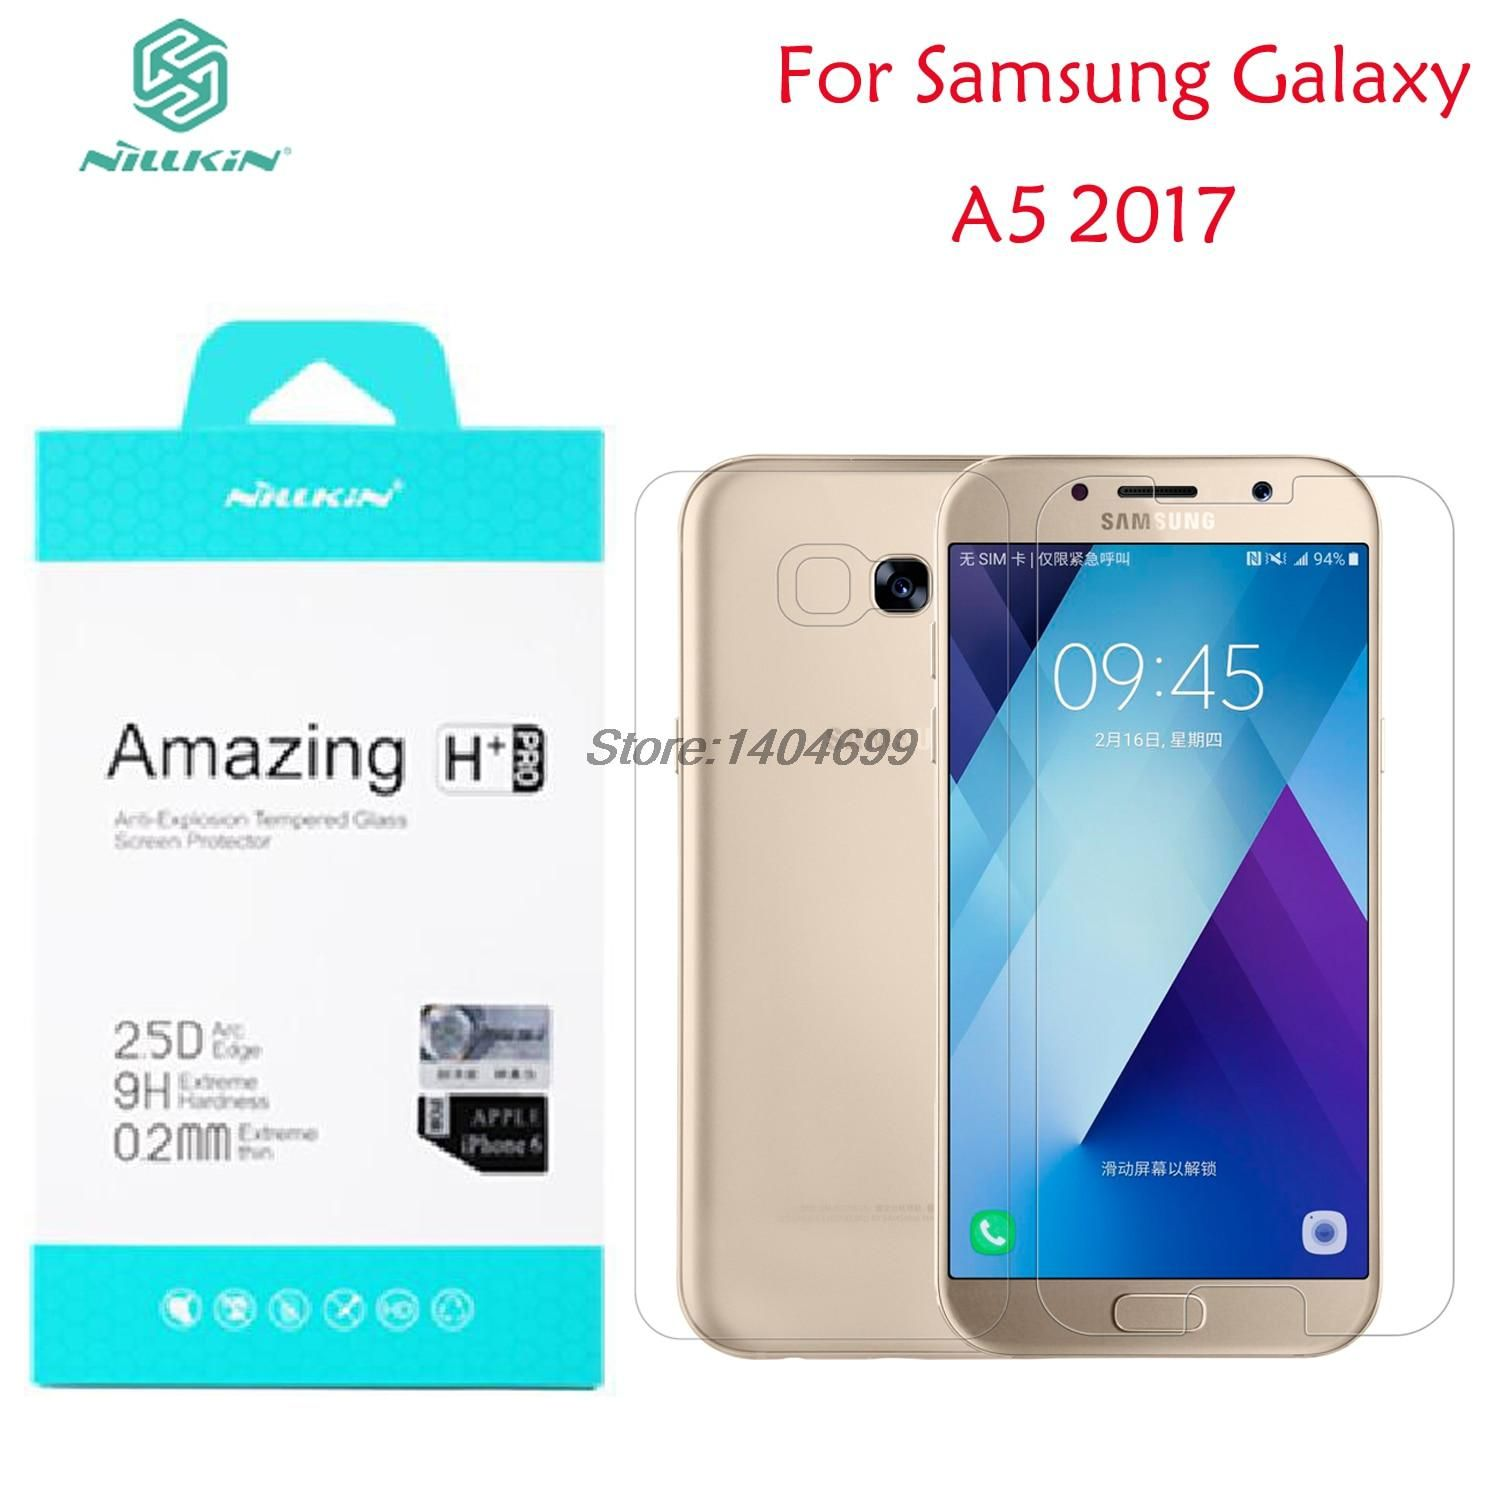 SFor Samsung Galaxy A5 2017 Screen Protector Nillkin Amazing H & H PRO Tempered Glass